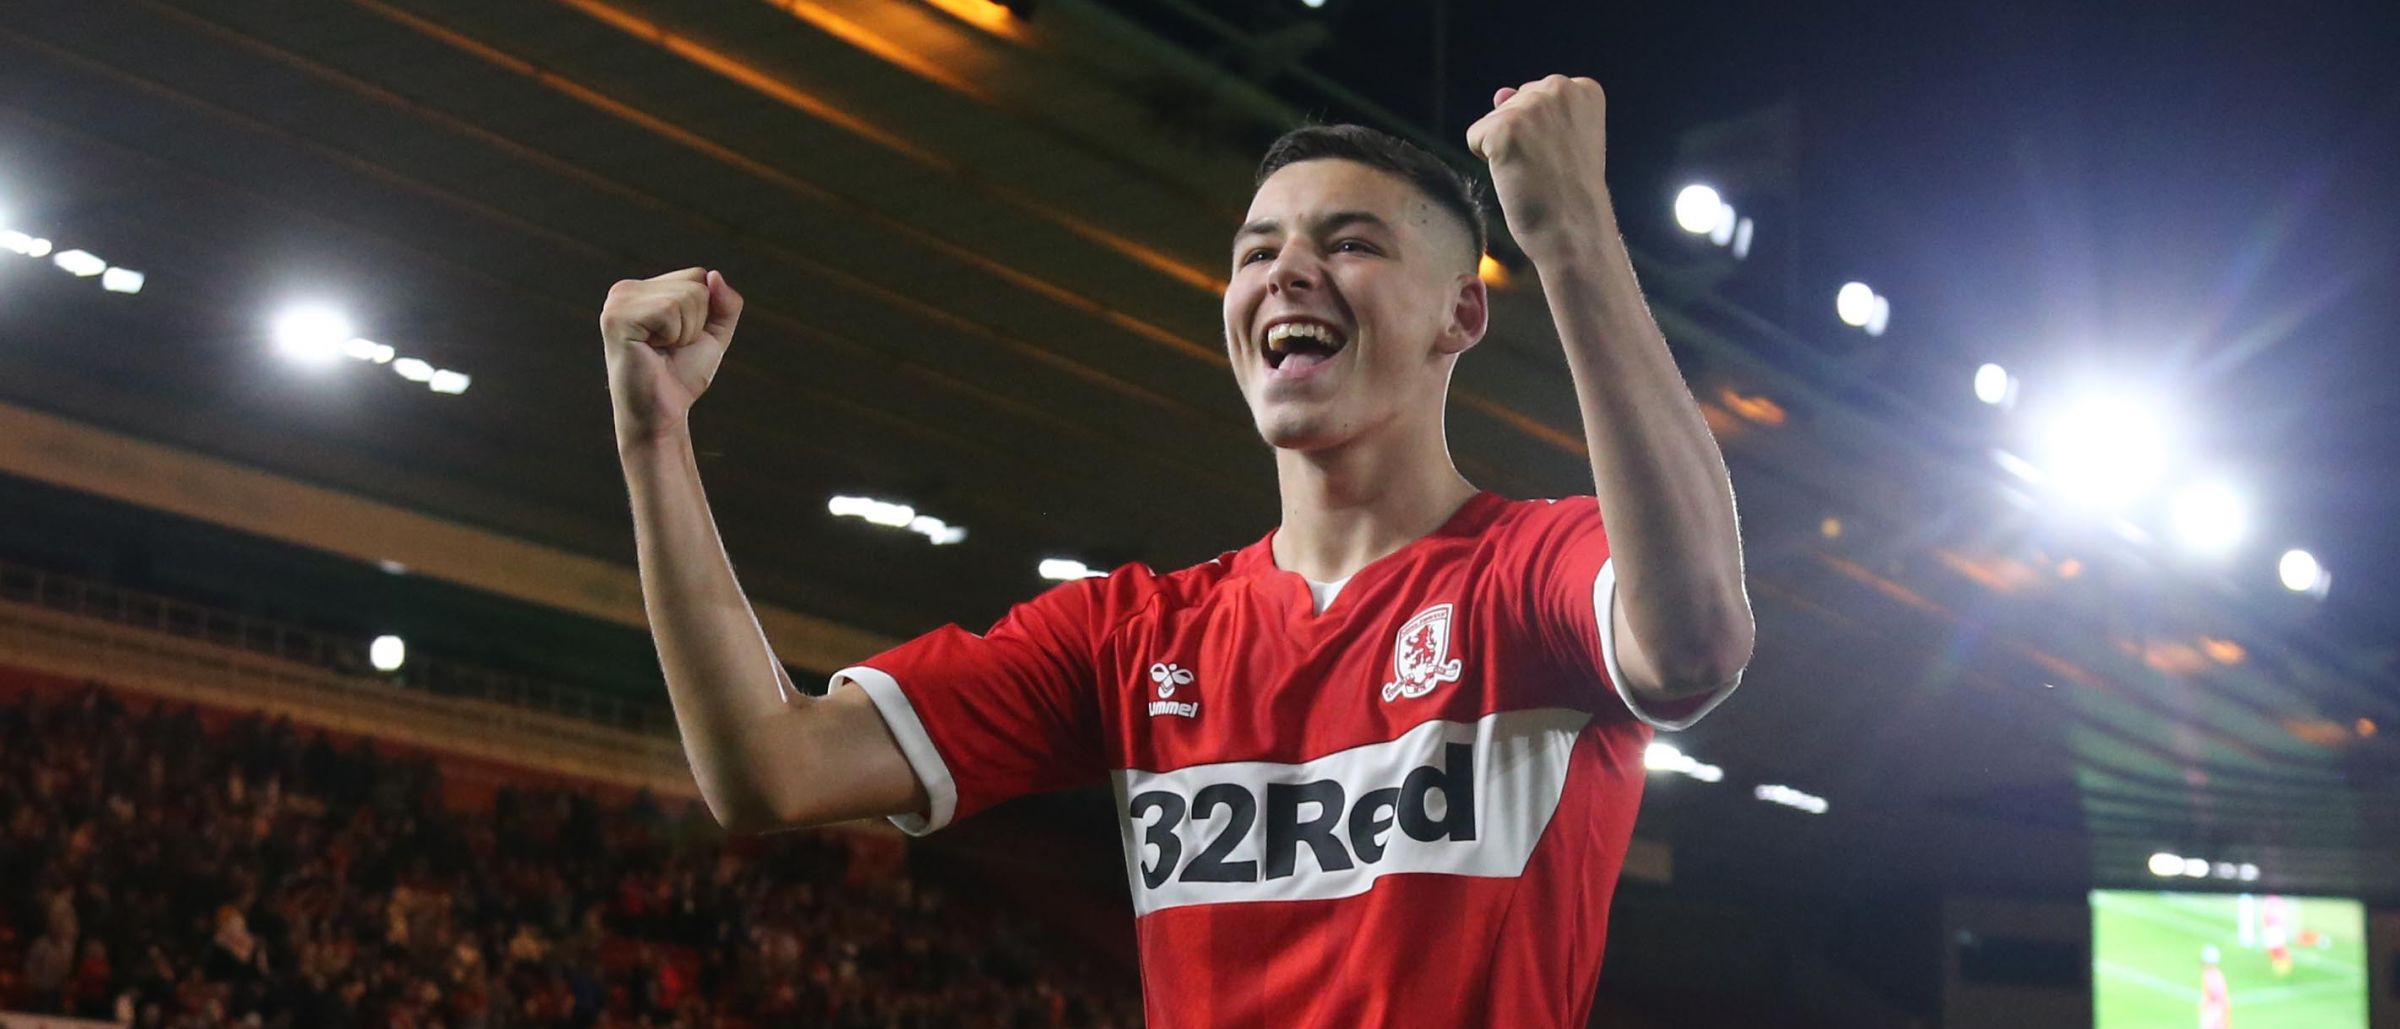 Boro boy Walker is delighted after the shoot-out win